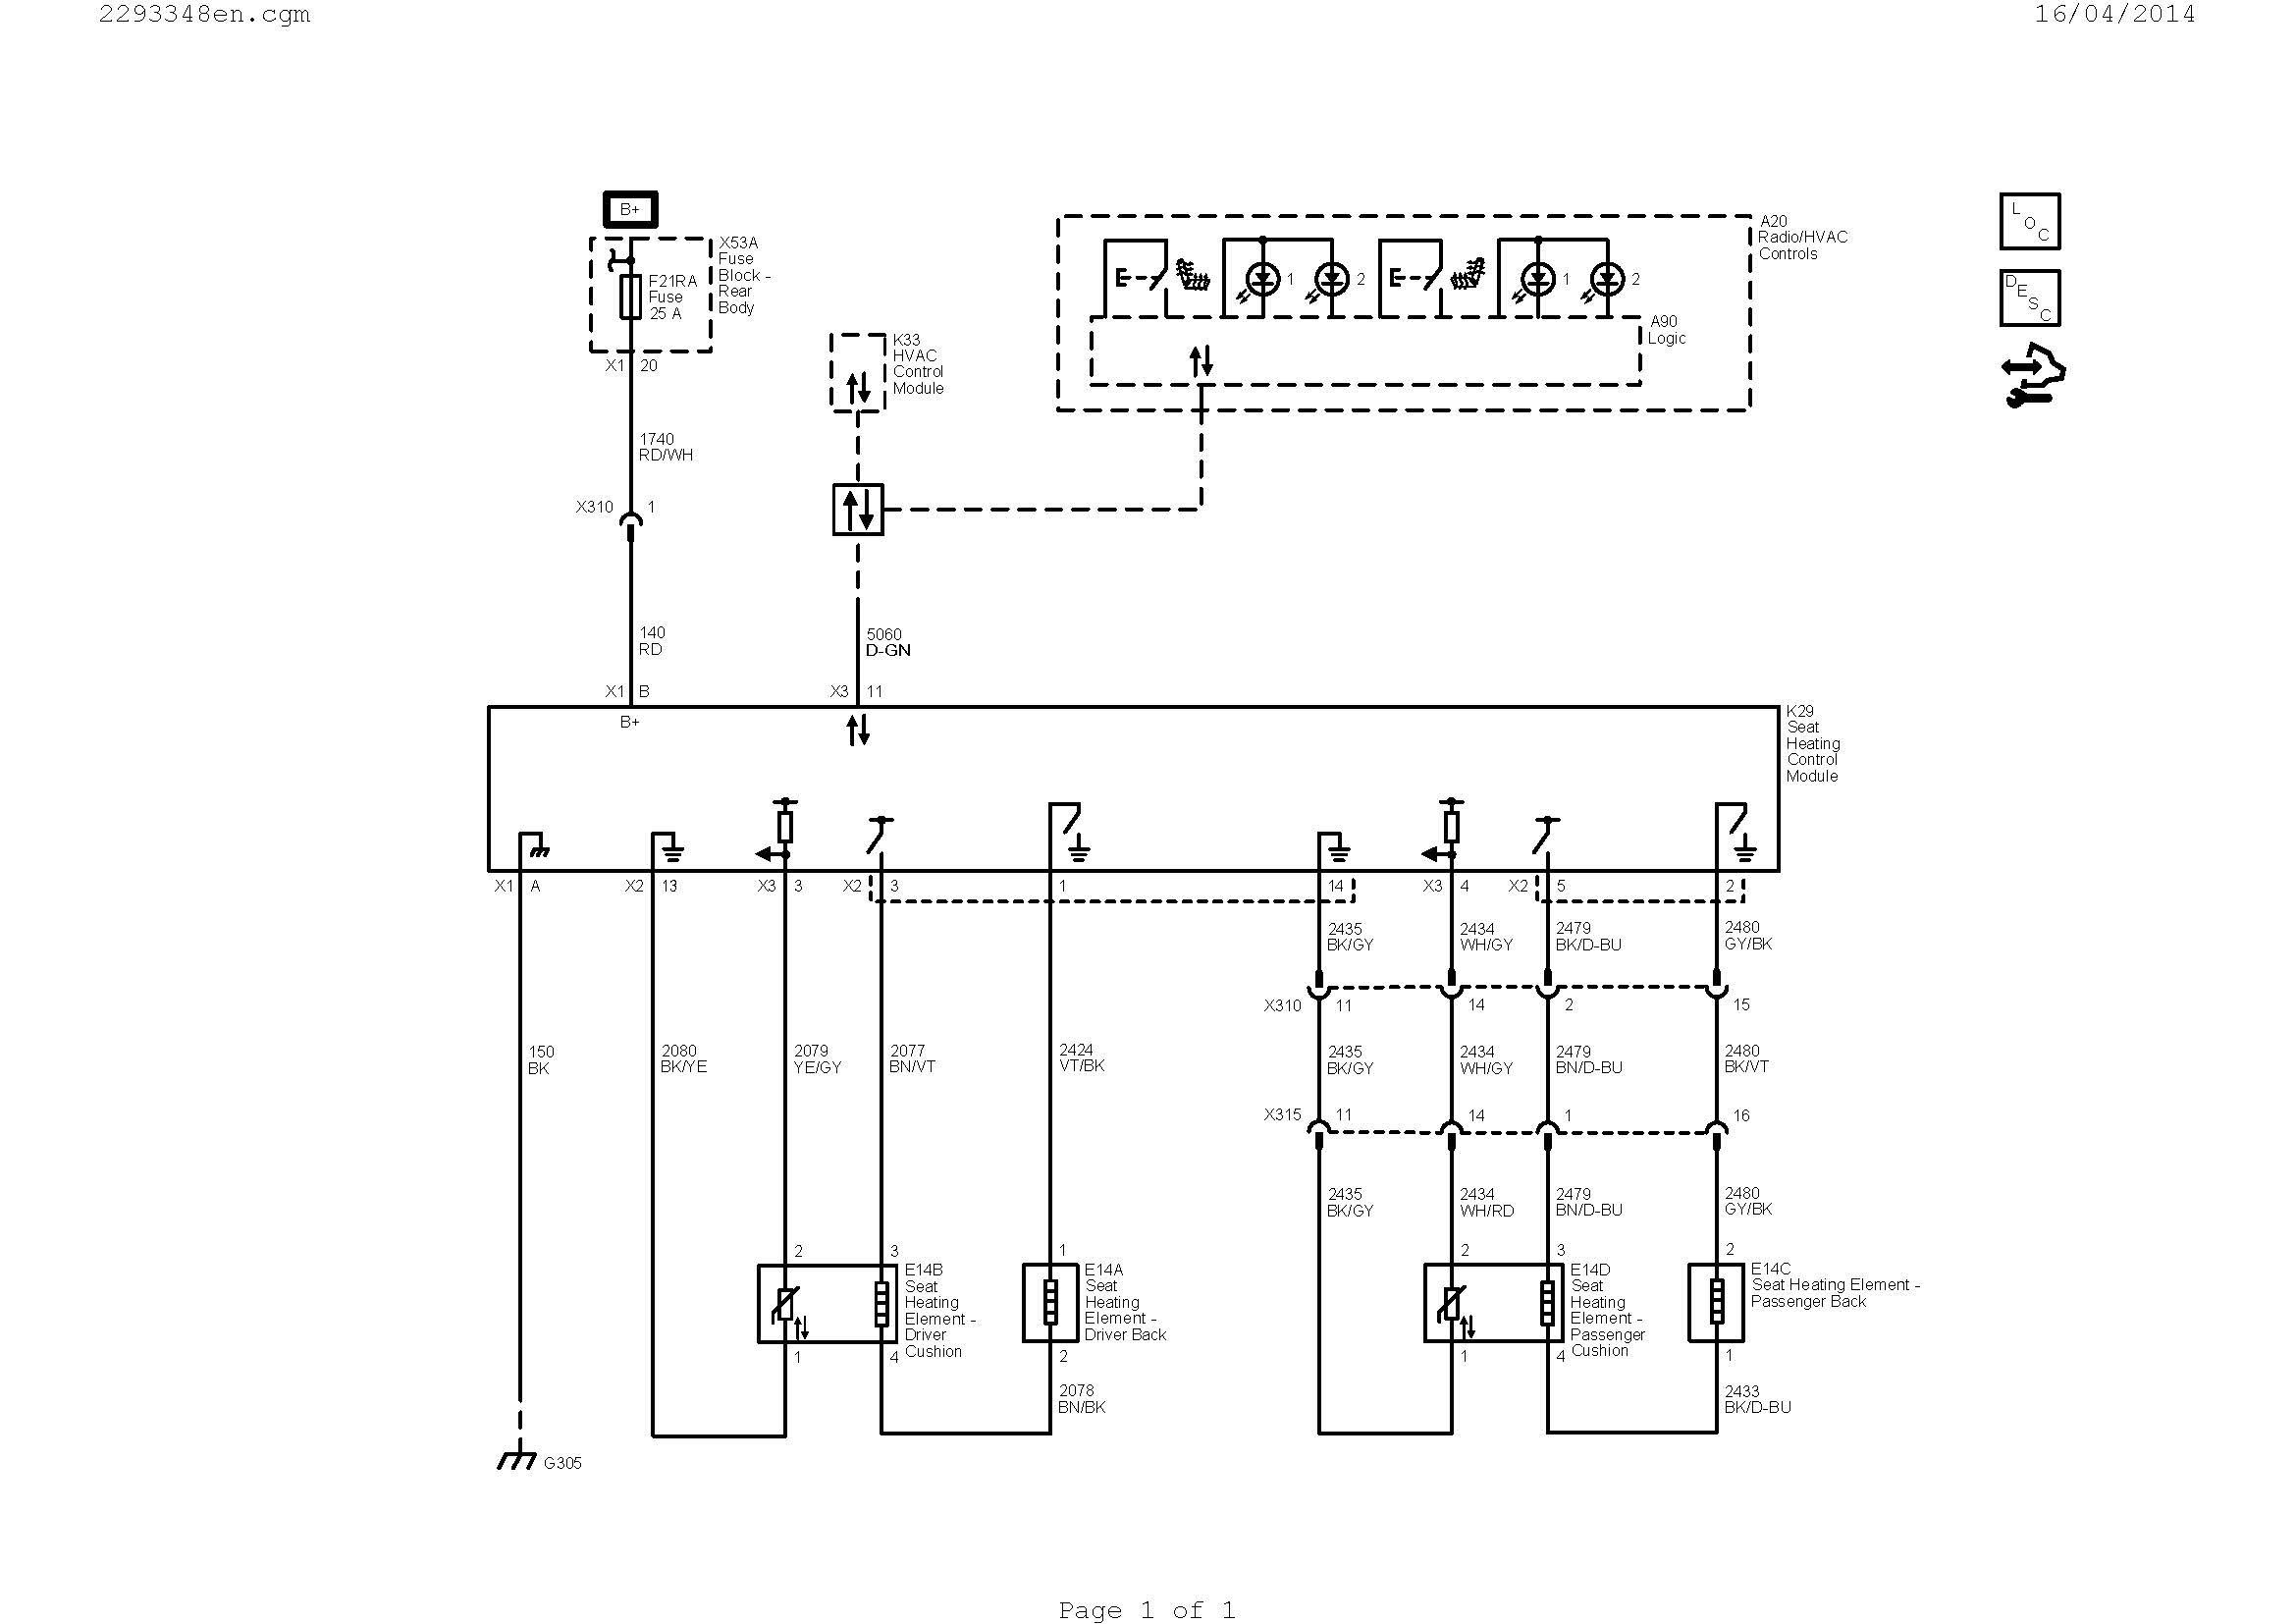 heating and cooling thermostat wiring diagram Collection-Nest Wireless thermostat Wiring Diagram Refrence Wiring Diagram Ac Valid Hvac Diagram Best Hvac Diagram 0d 16-m